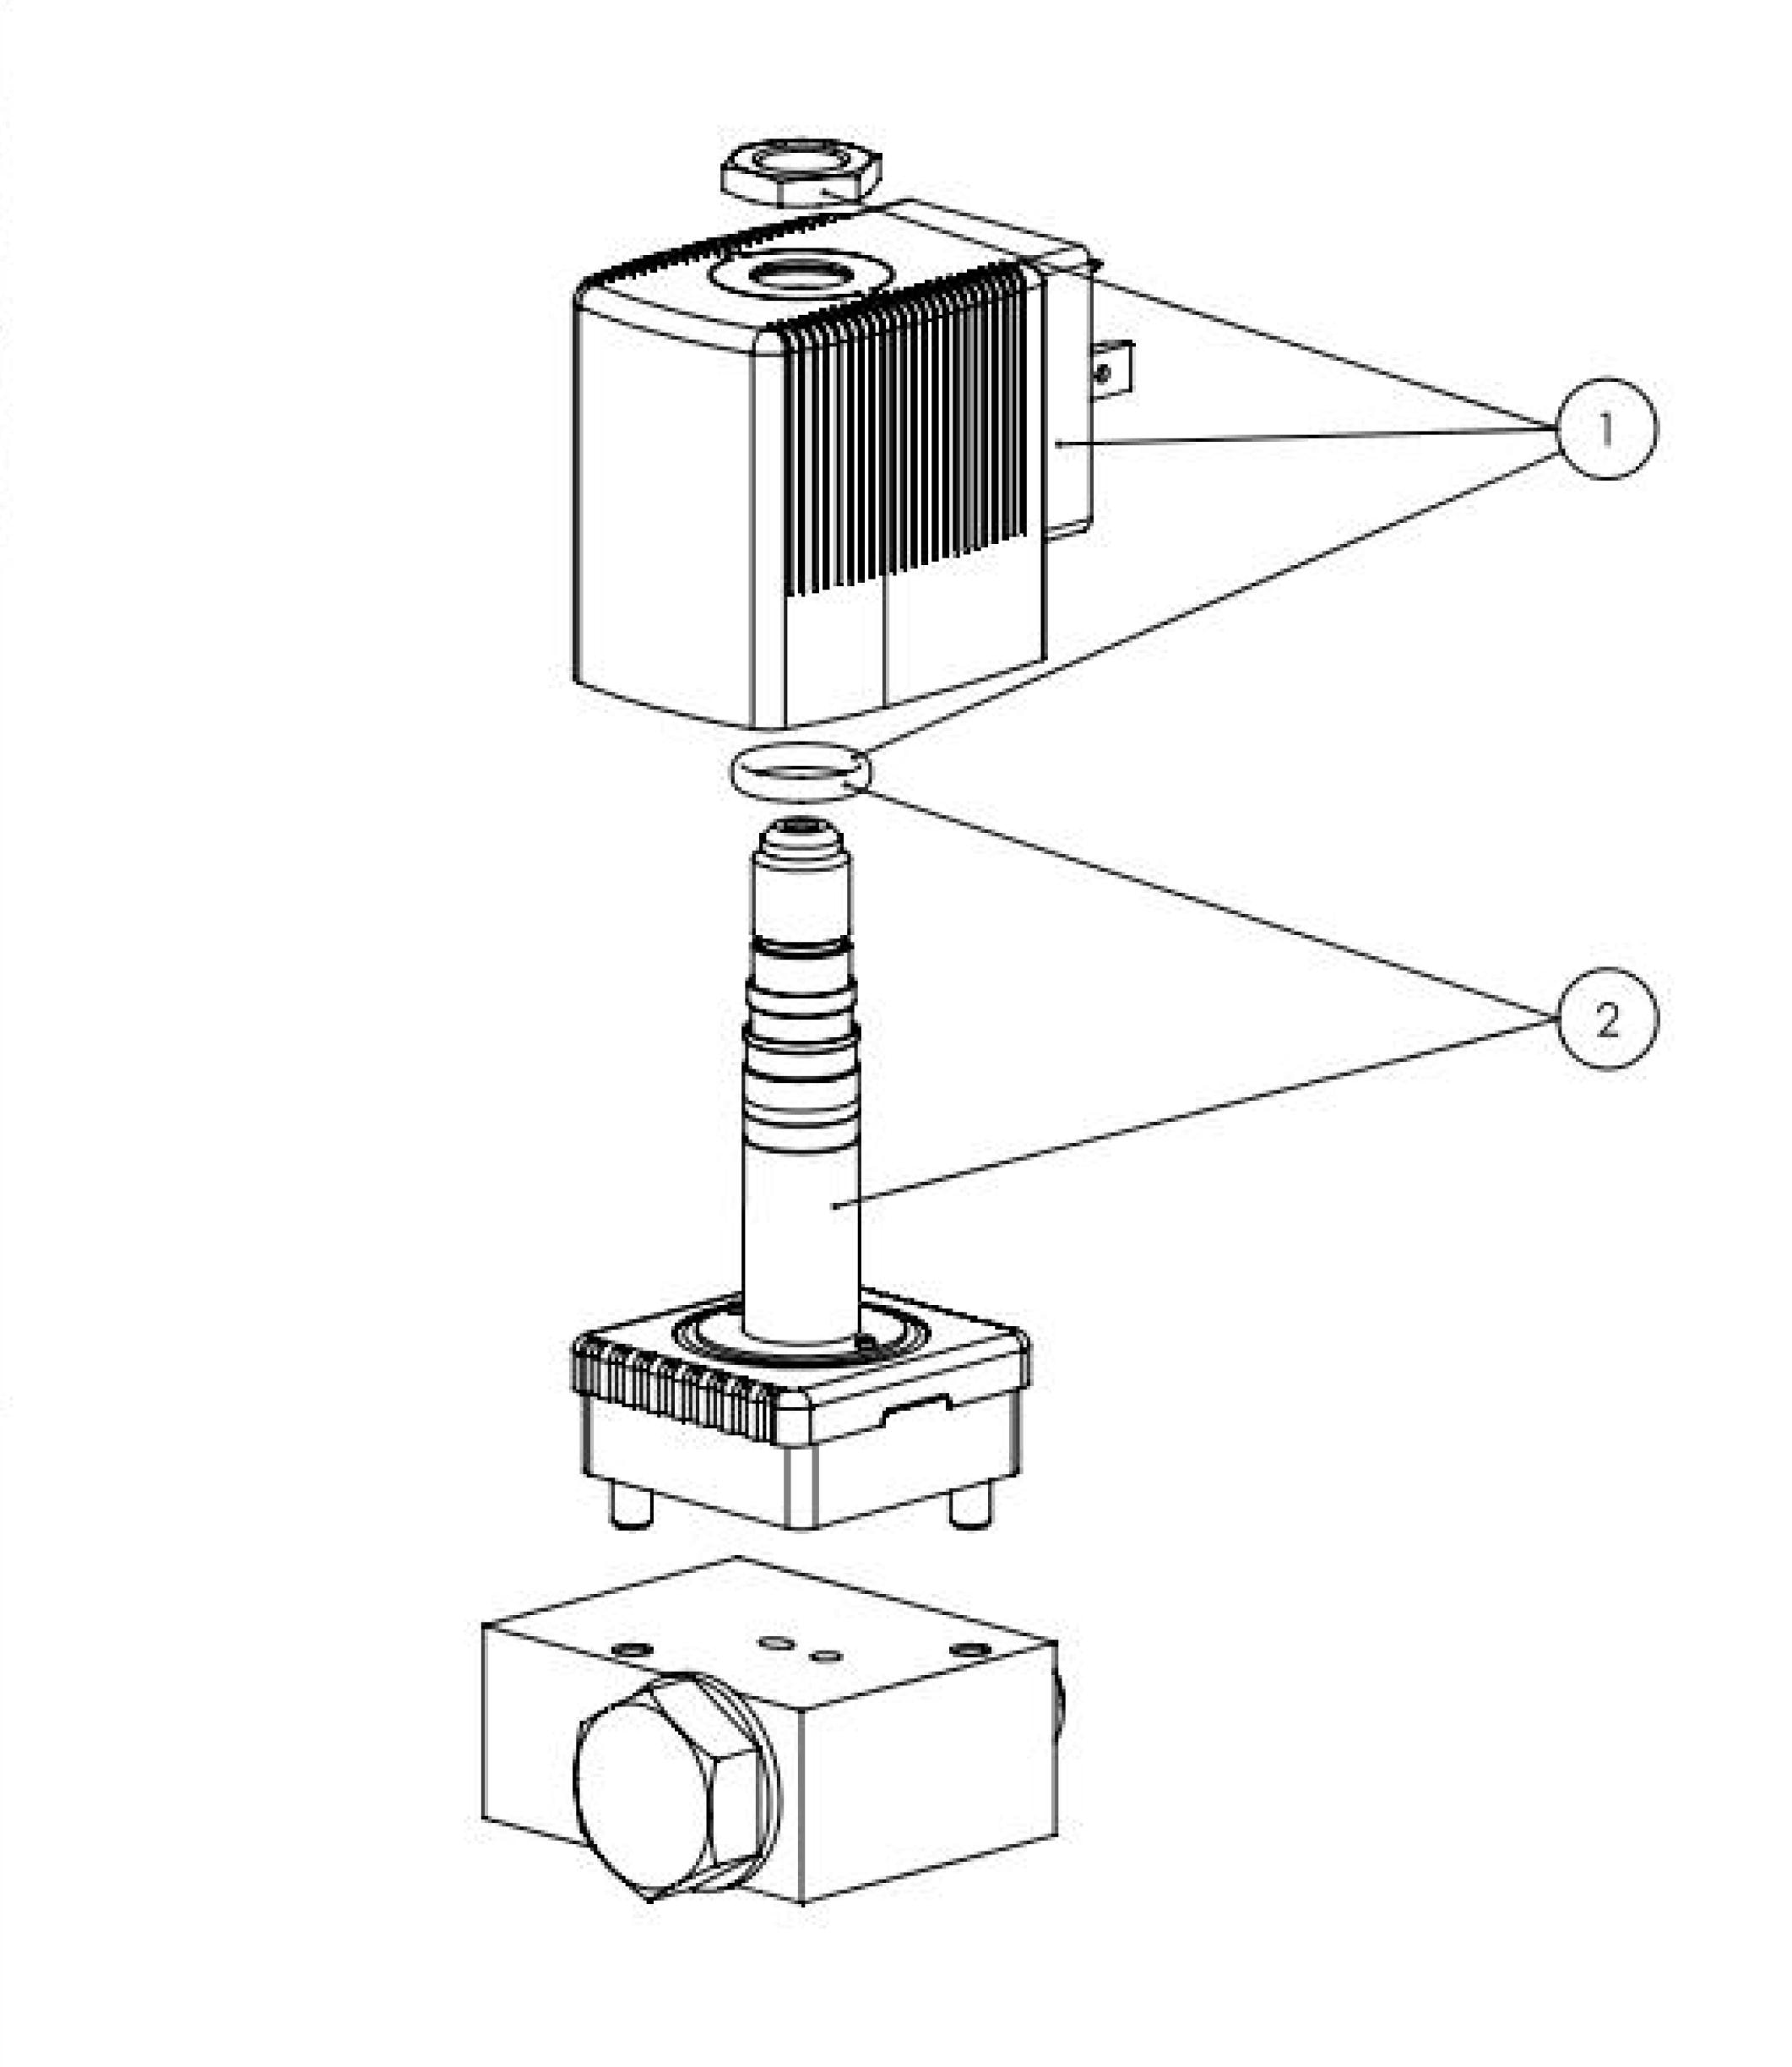 Type 6014 Plunger Valve 3 2 Way Direct Acting Switch Datasheet The Depiction Of Products May Differ From Actual Specific Design